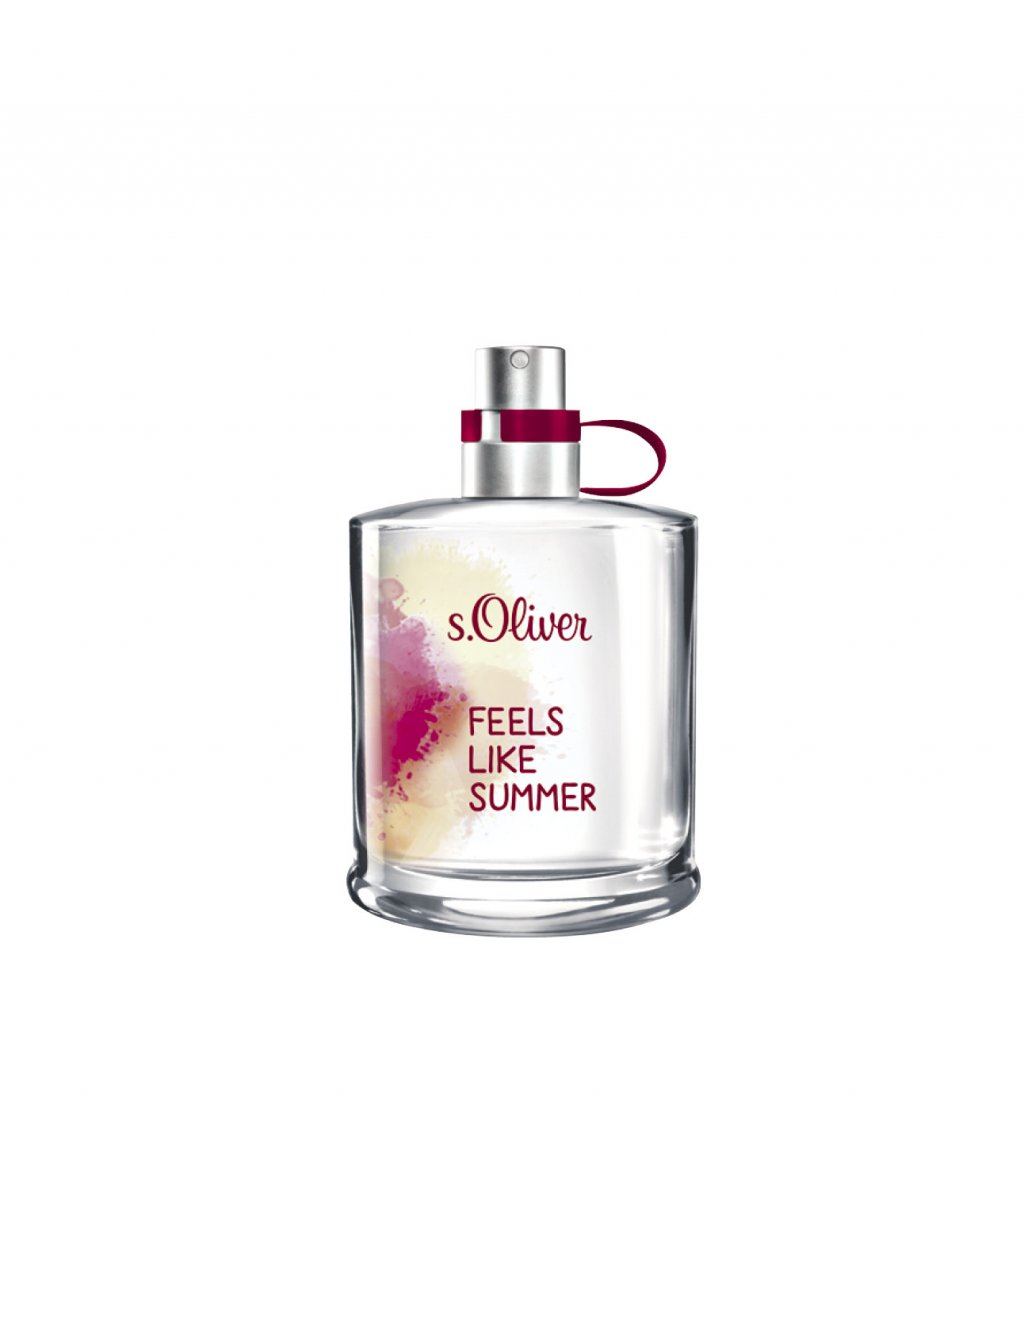 Vůně, s. Oliver, Feels Like Summer, EdT 30 ml/460 Kč